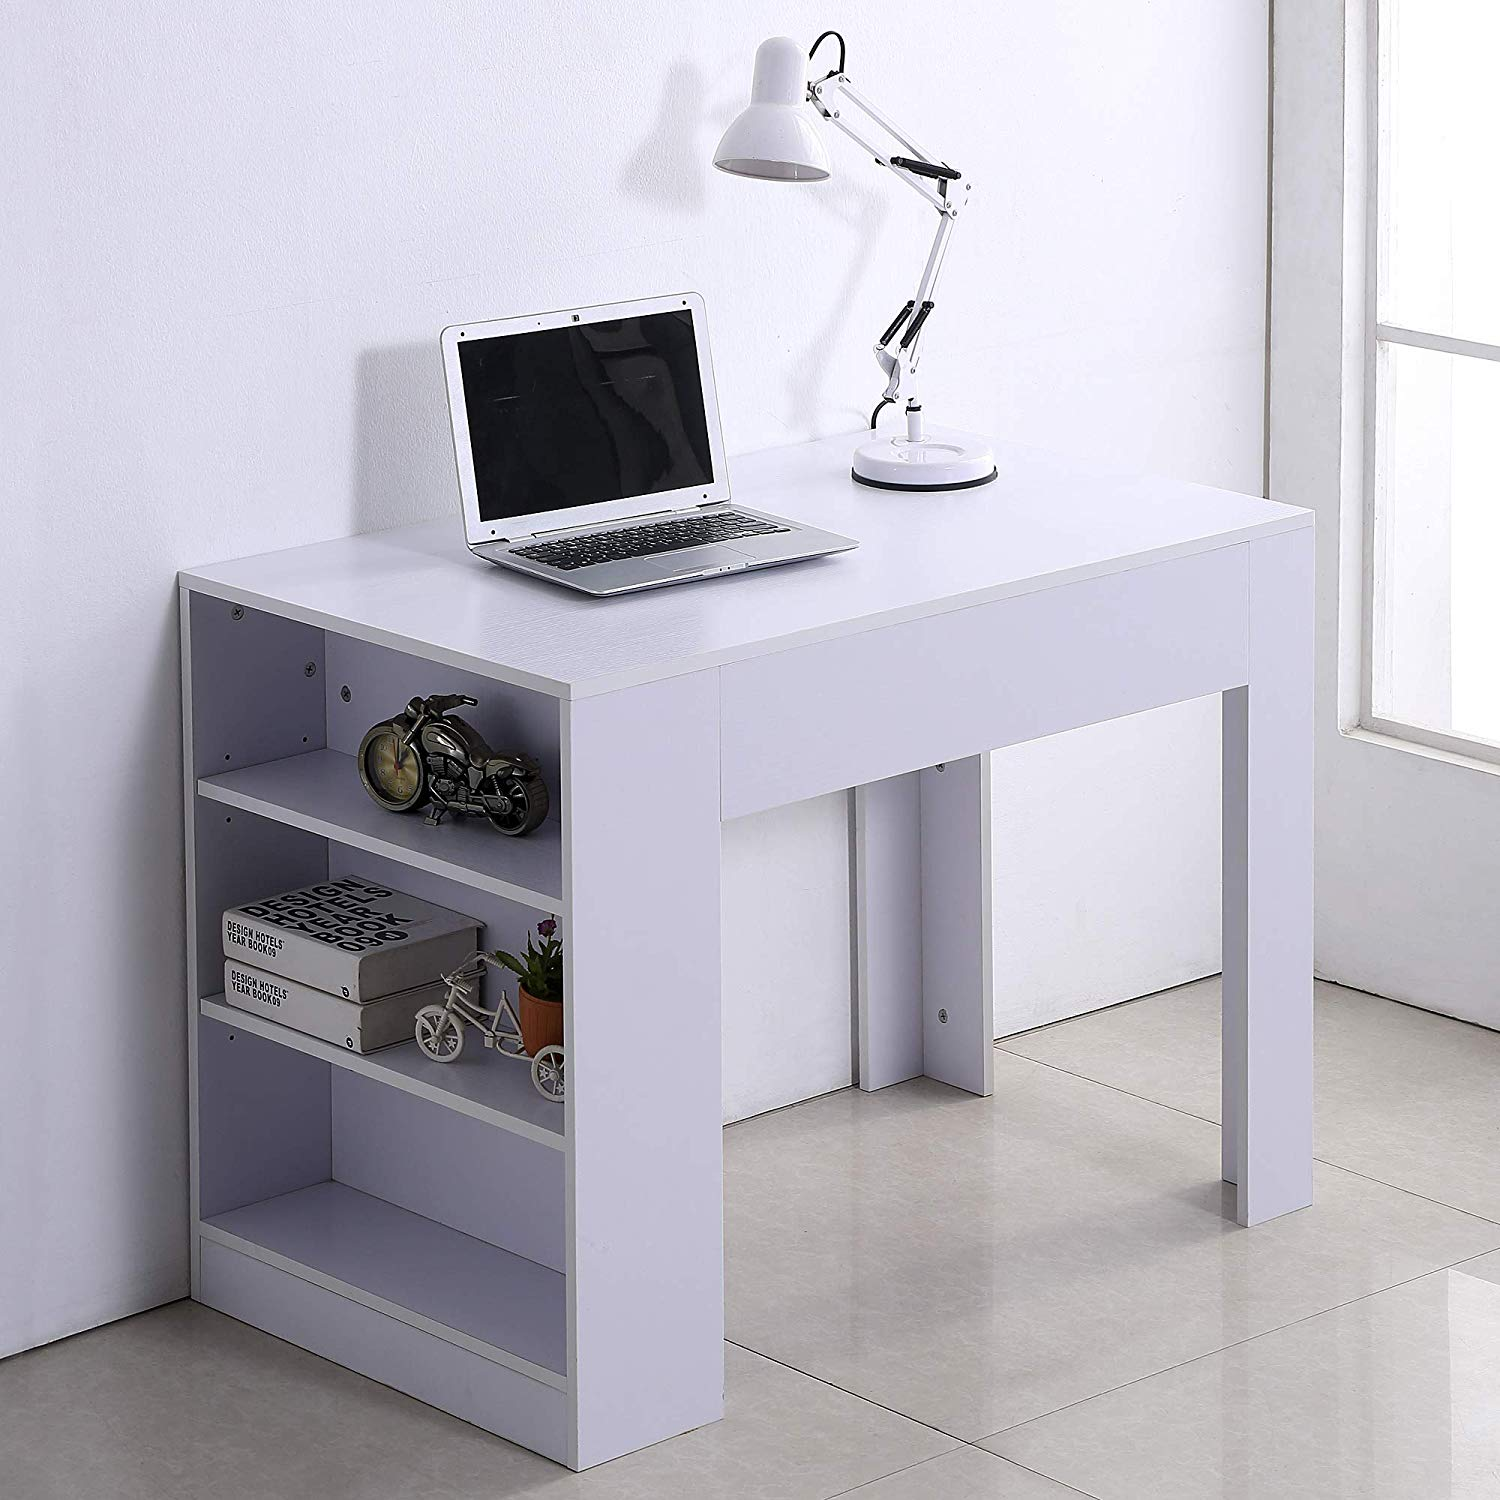 Amazon Com Homcom 40 Space Saving Modern Home Office Computer Desk Bookshelf Combo White Gat In 2020 Desk Bookshelf Combo Home Office Computer Desk Bookshelf Desk